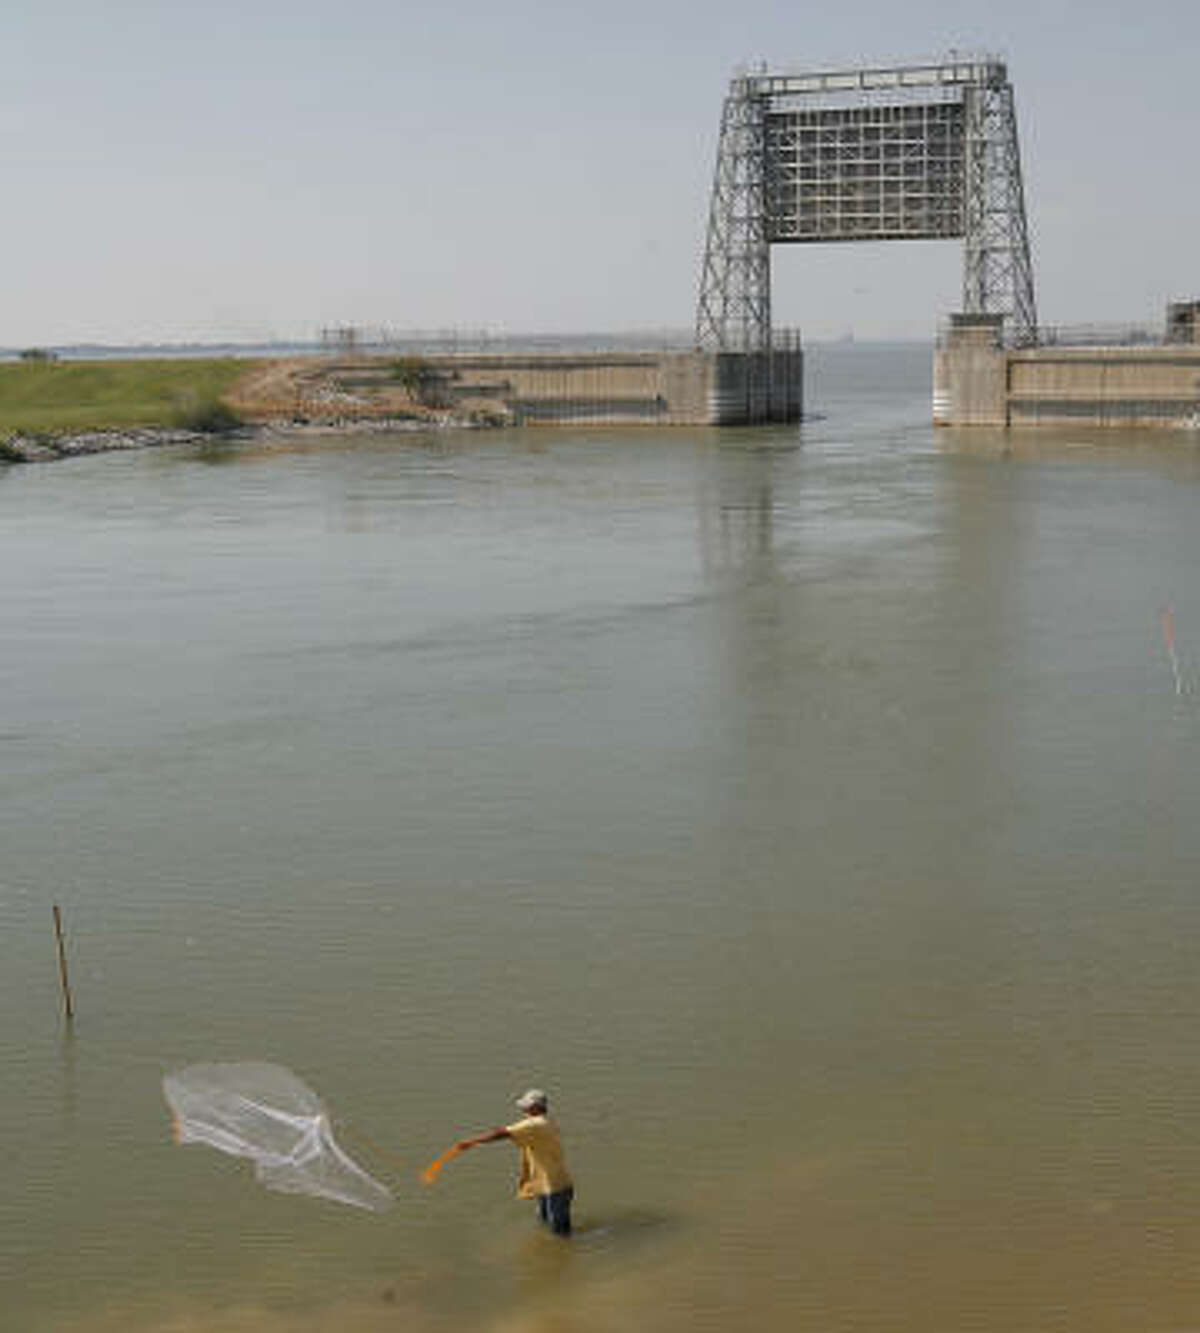 Hector Vasquez fishes with a net in Moses Lake, which is separated from Galveston Bay by the tide gate in the background, part of the Texas City hurricane-levee system.